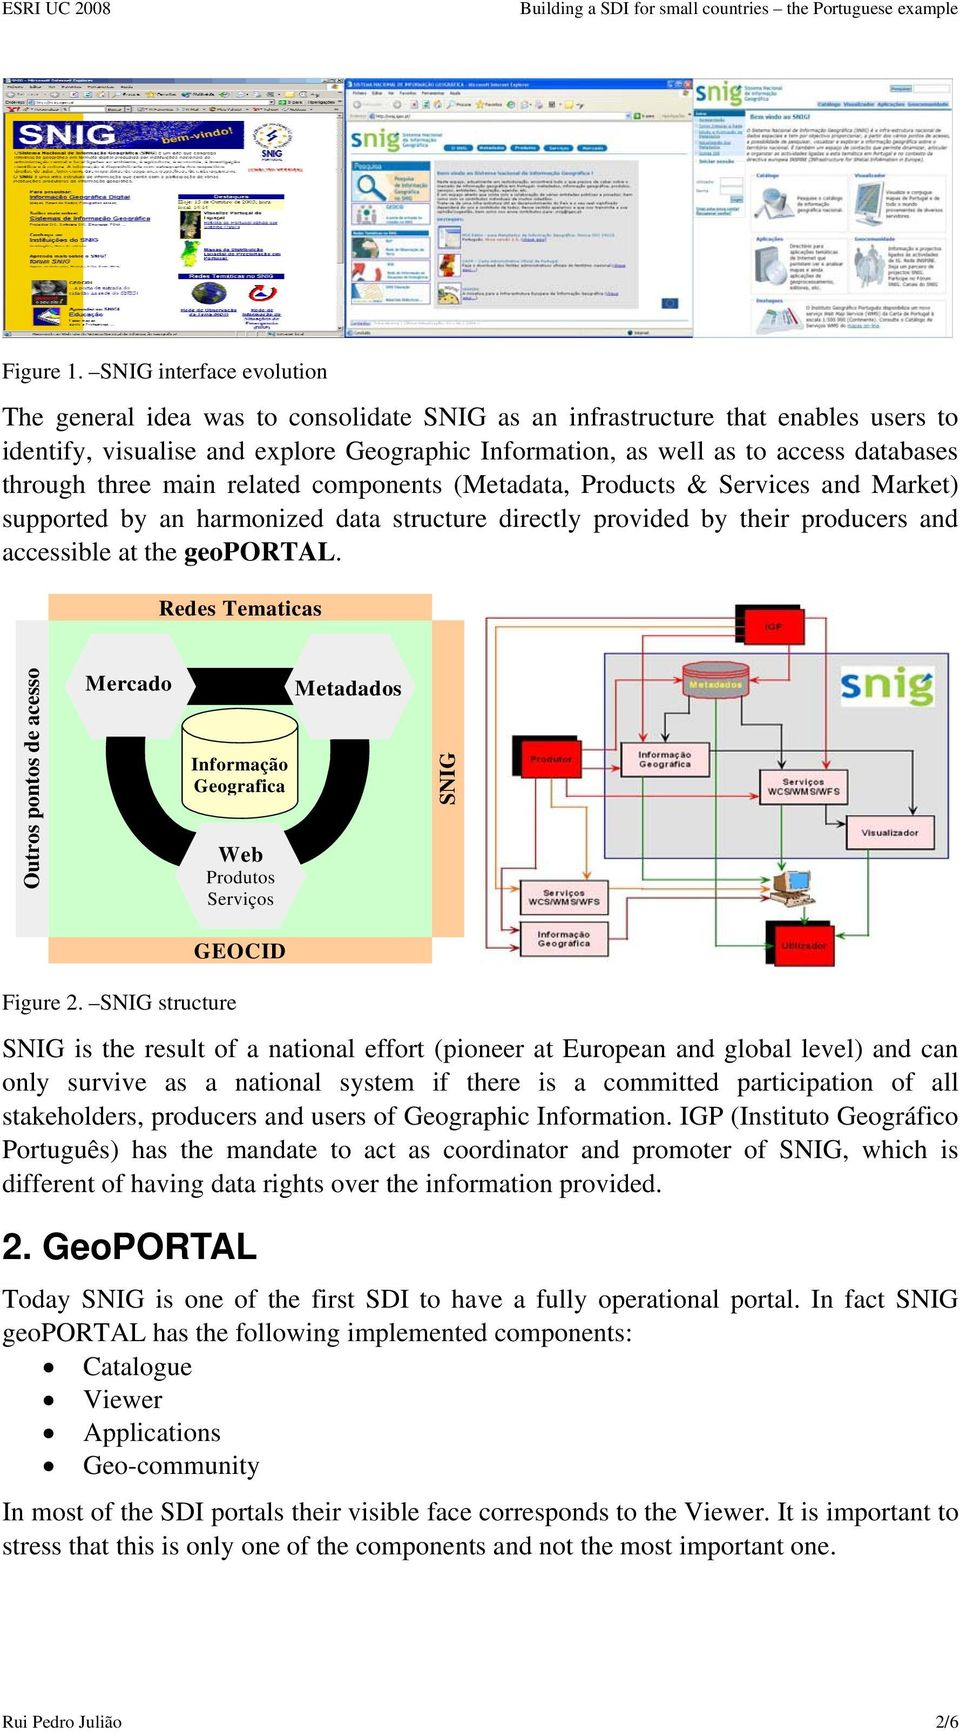 through three main related components (Metadata, Products & Services and Market) supported by an harmonized data structure directly provided by their producers and accessible at the geoportal.